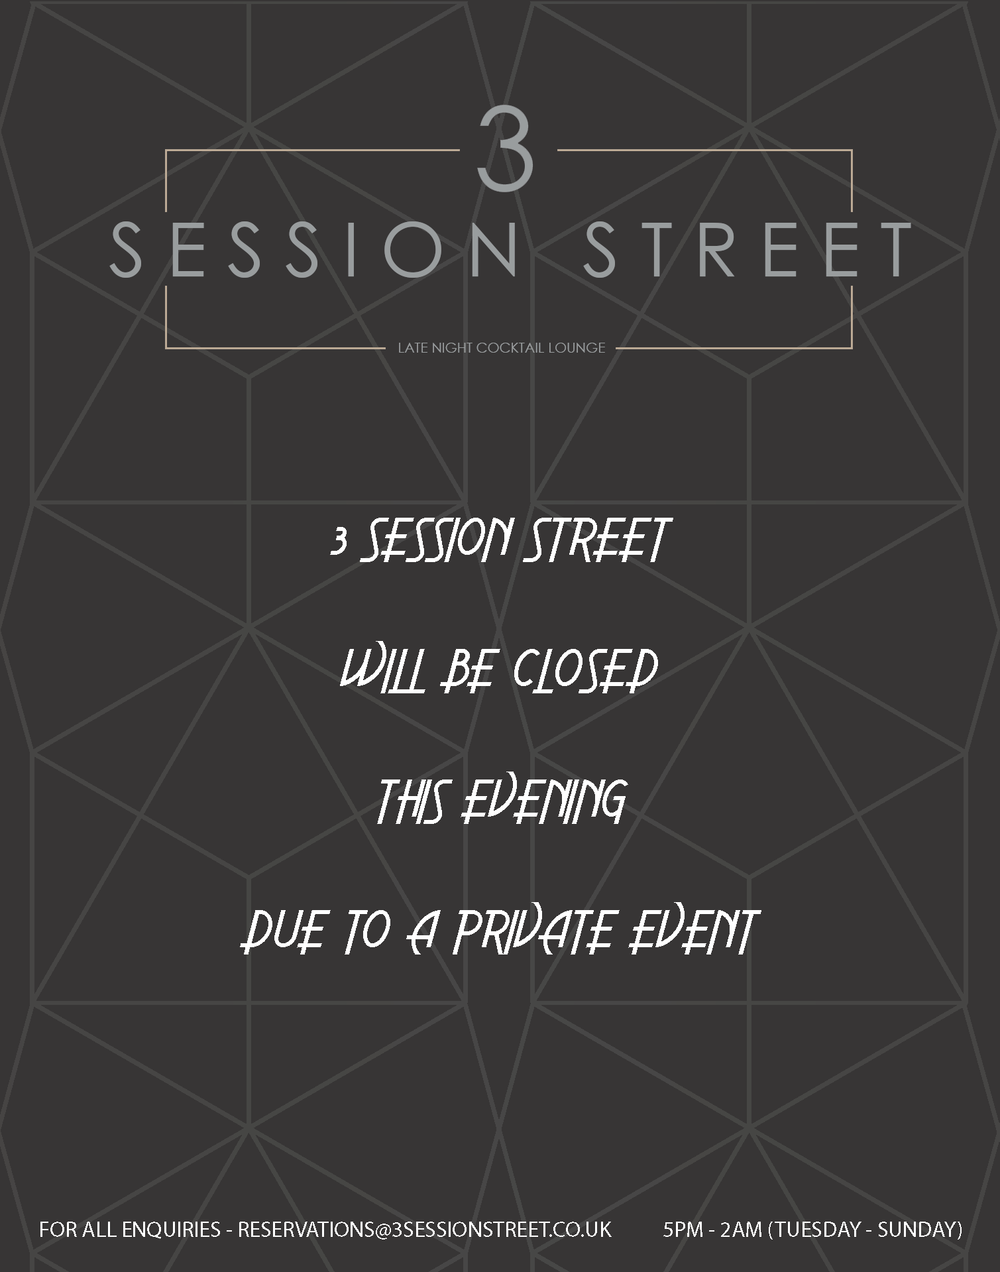 Closed for event sign.png